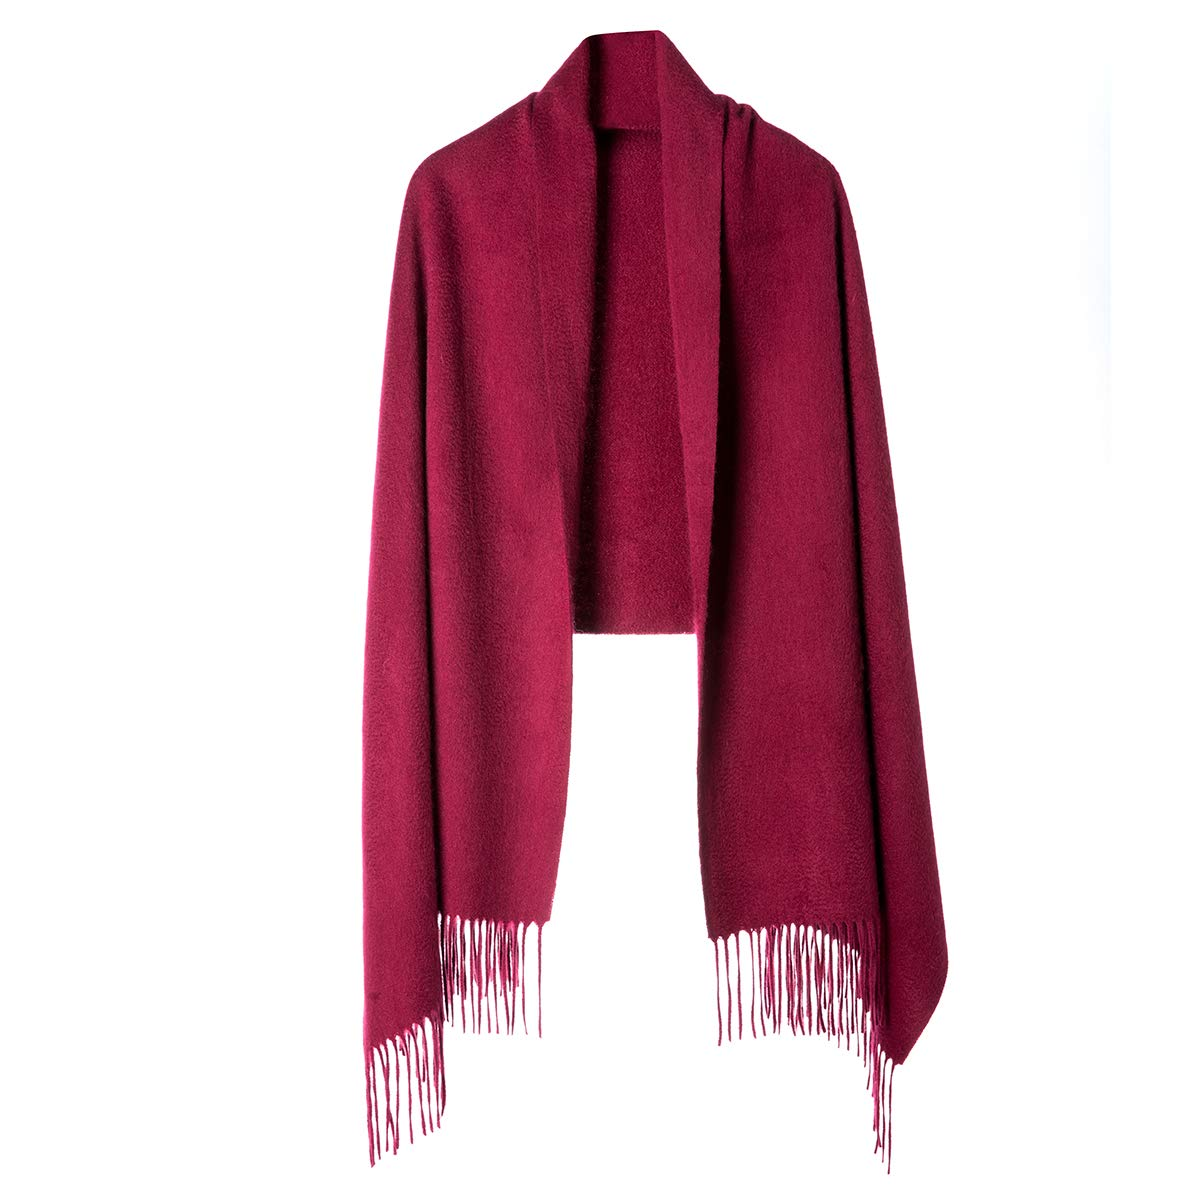 Cashmere Wrap Shawl for Women | Authentic 100% Pure Cashmere Extra Large (75inx25.6in) Scarf, Dark Red